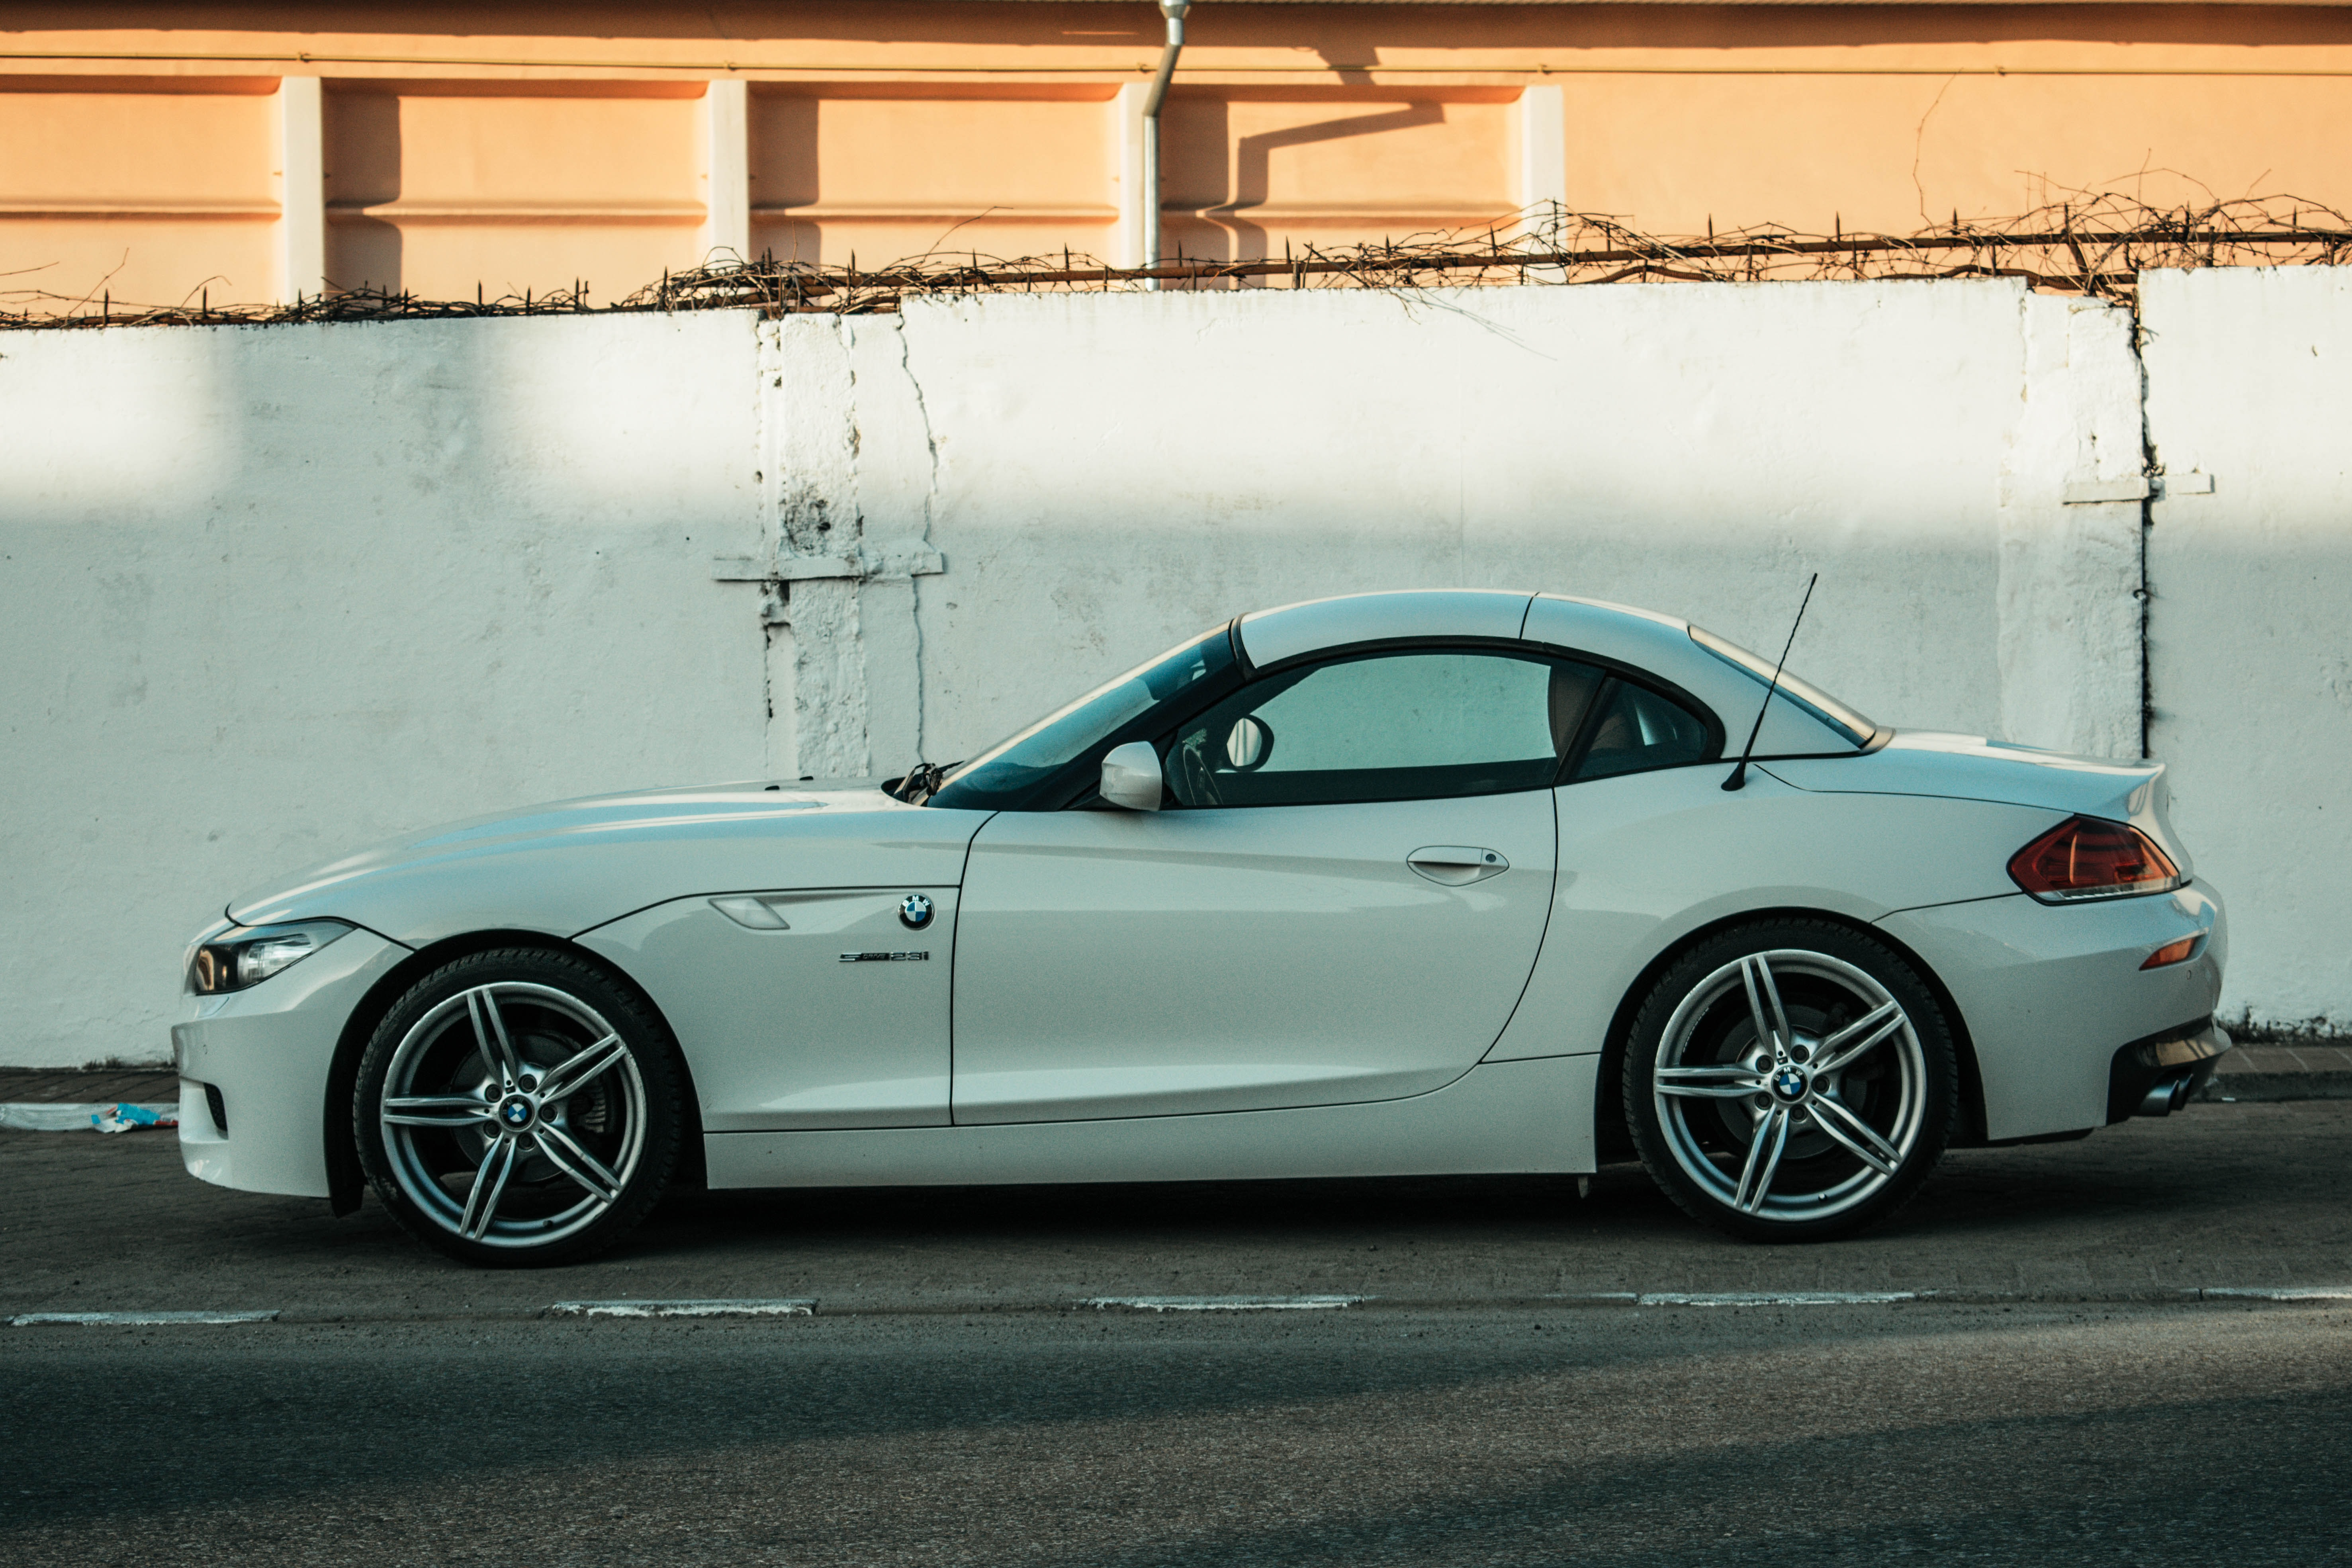 white coupe parked beside white concrete wall